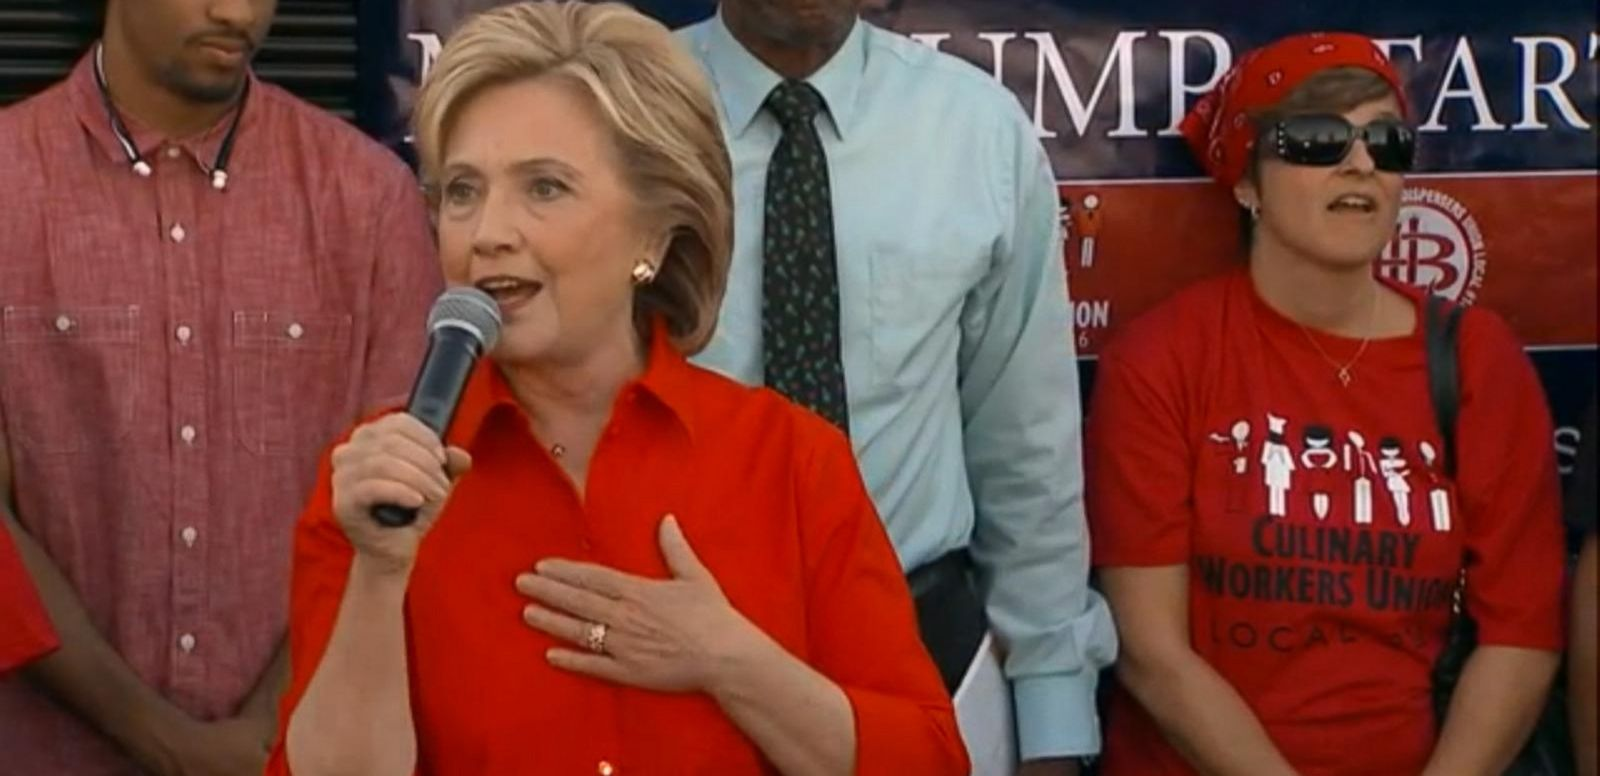 VIDEO: Hillary Clinton Shows Up at Union Rally Protesting Donald Trump's Las Vegas Hotel